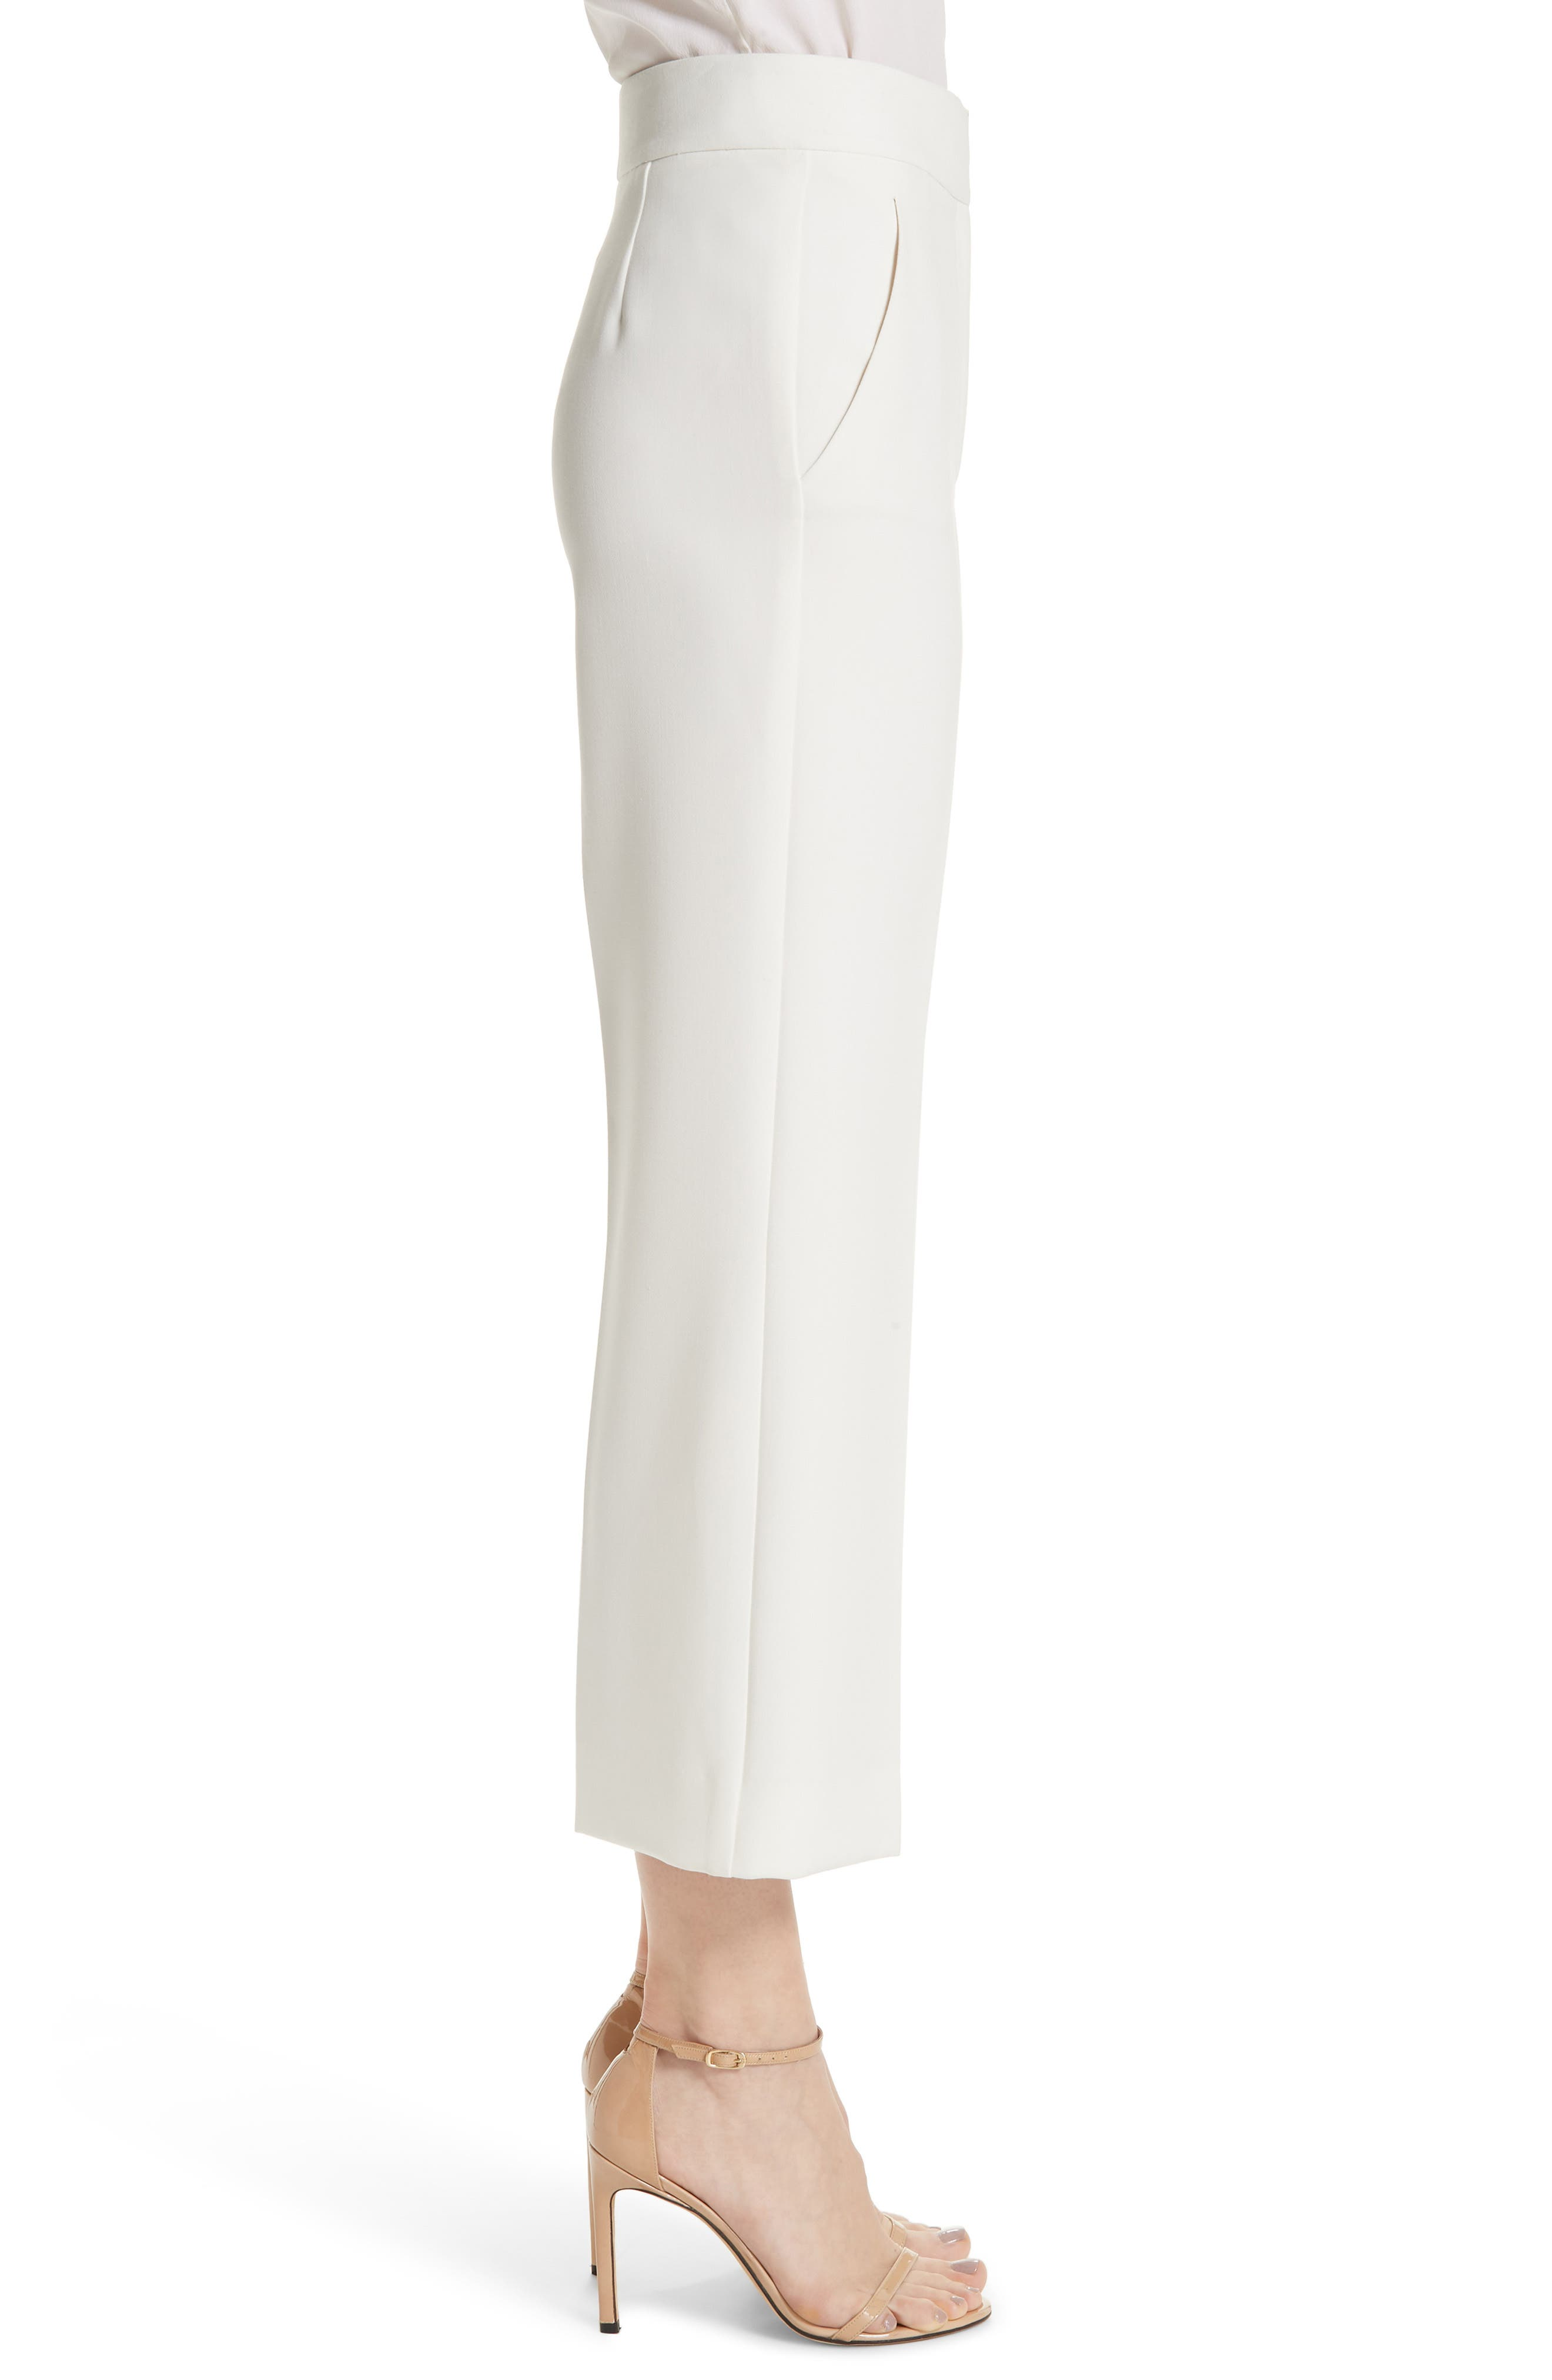 ST. JOHN COLLECTION, Bella Double Weave Crop Flare Pants, Alternate thumbnail 3, color, CREAM